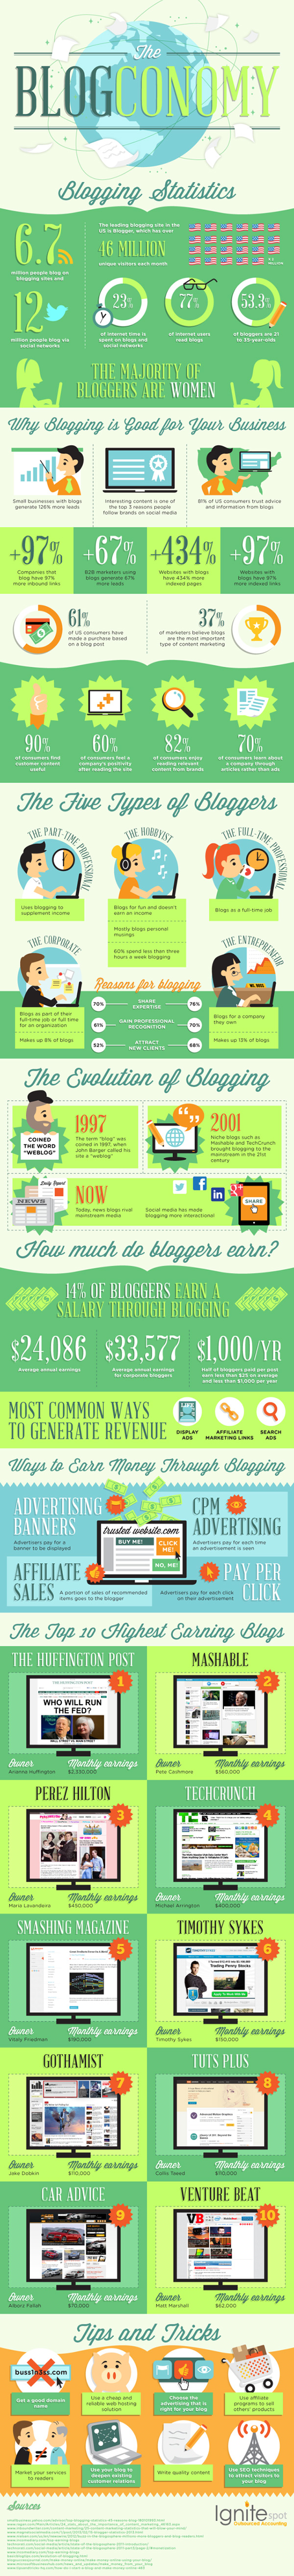 The Amazing Blogging Statistics